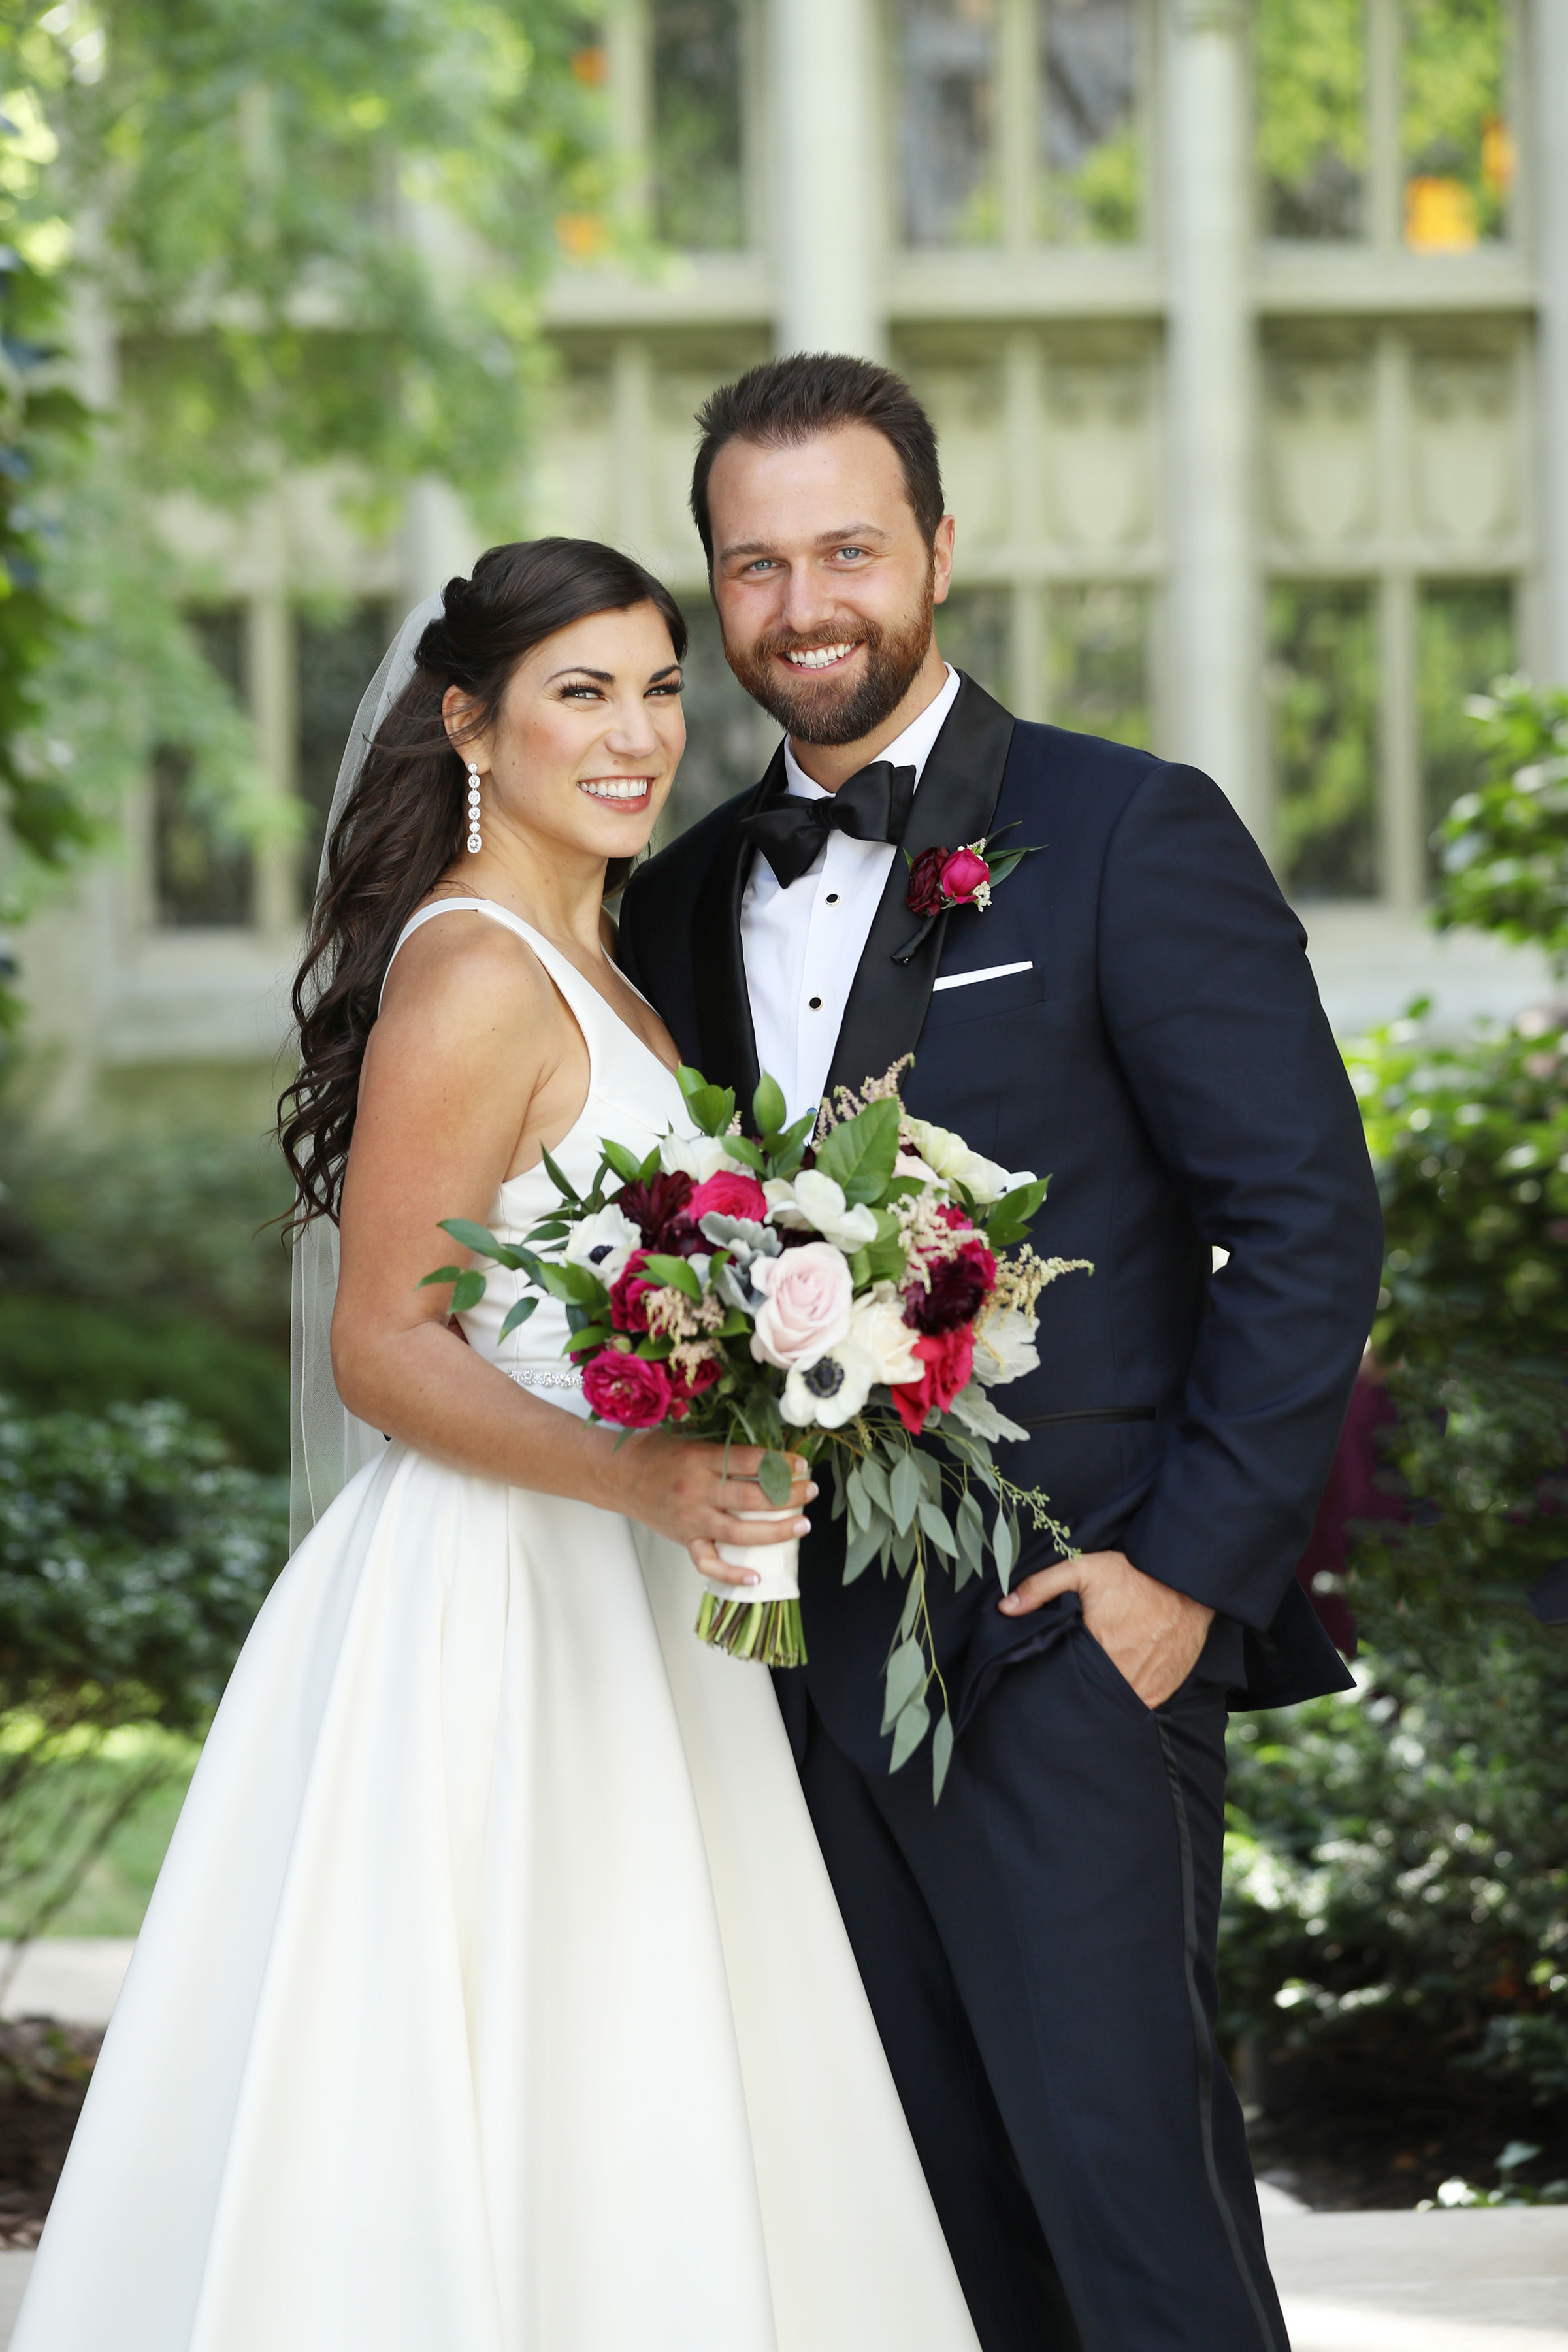 Bride and groom portrait in white and red - photo by Kenny Kim Photography